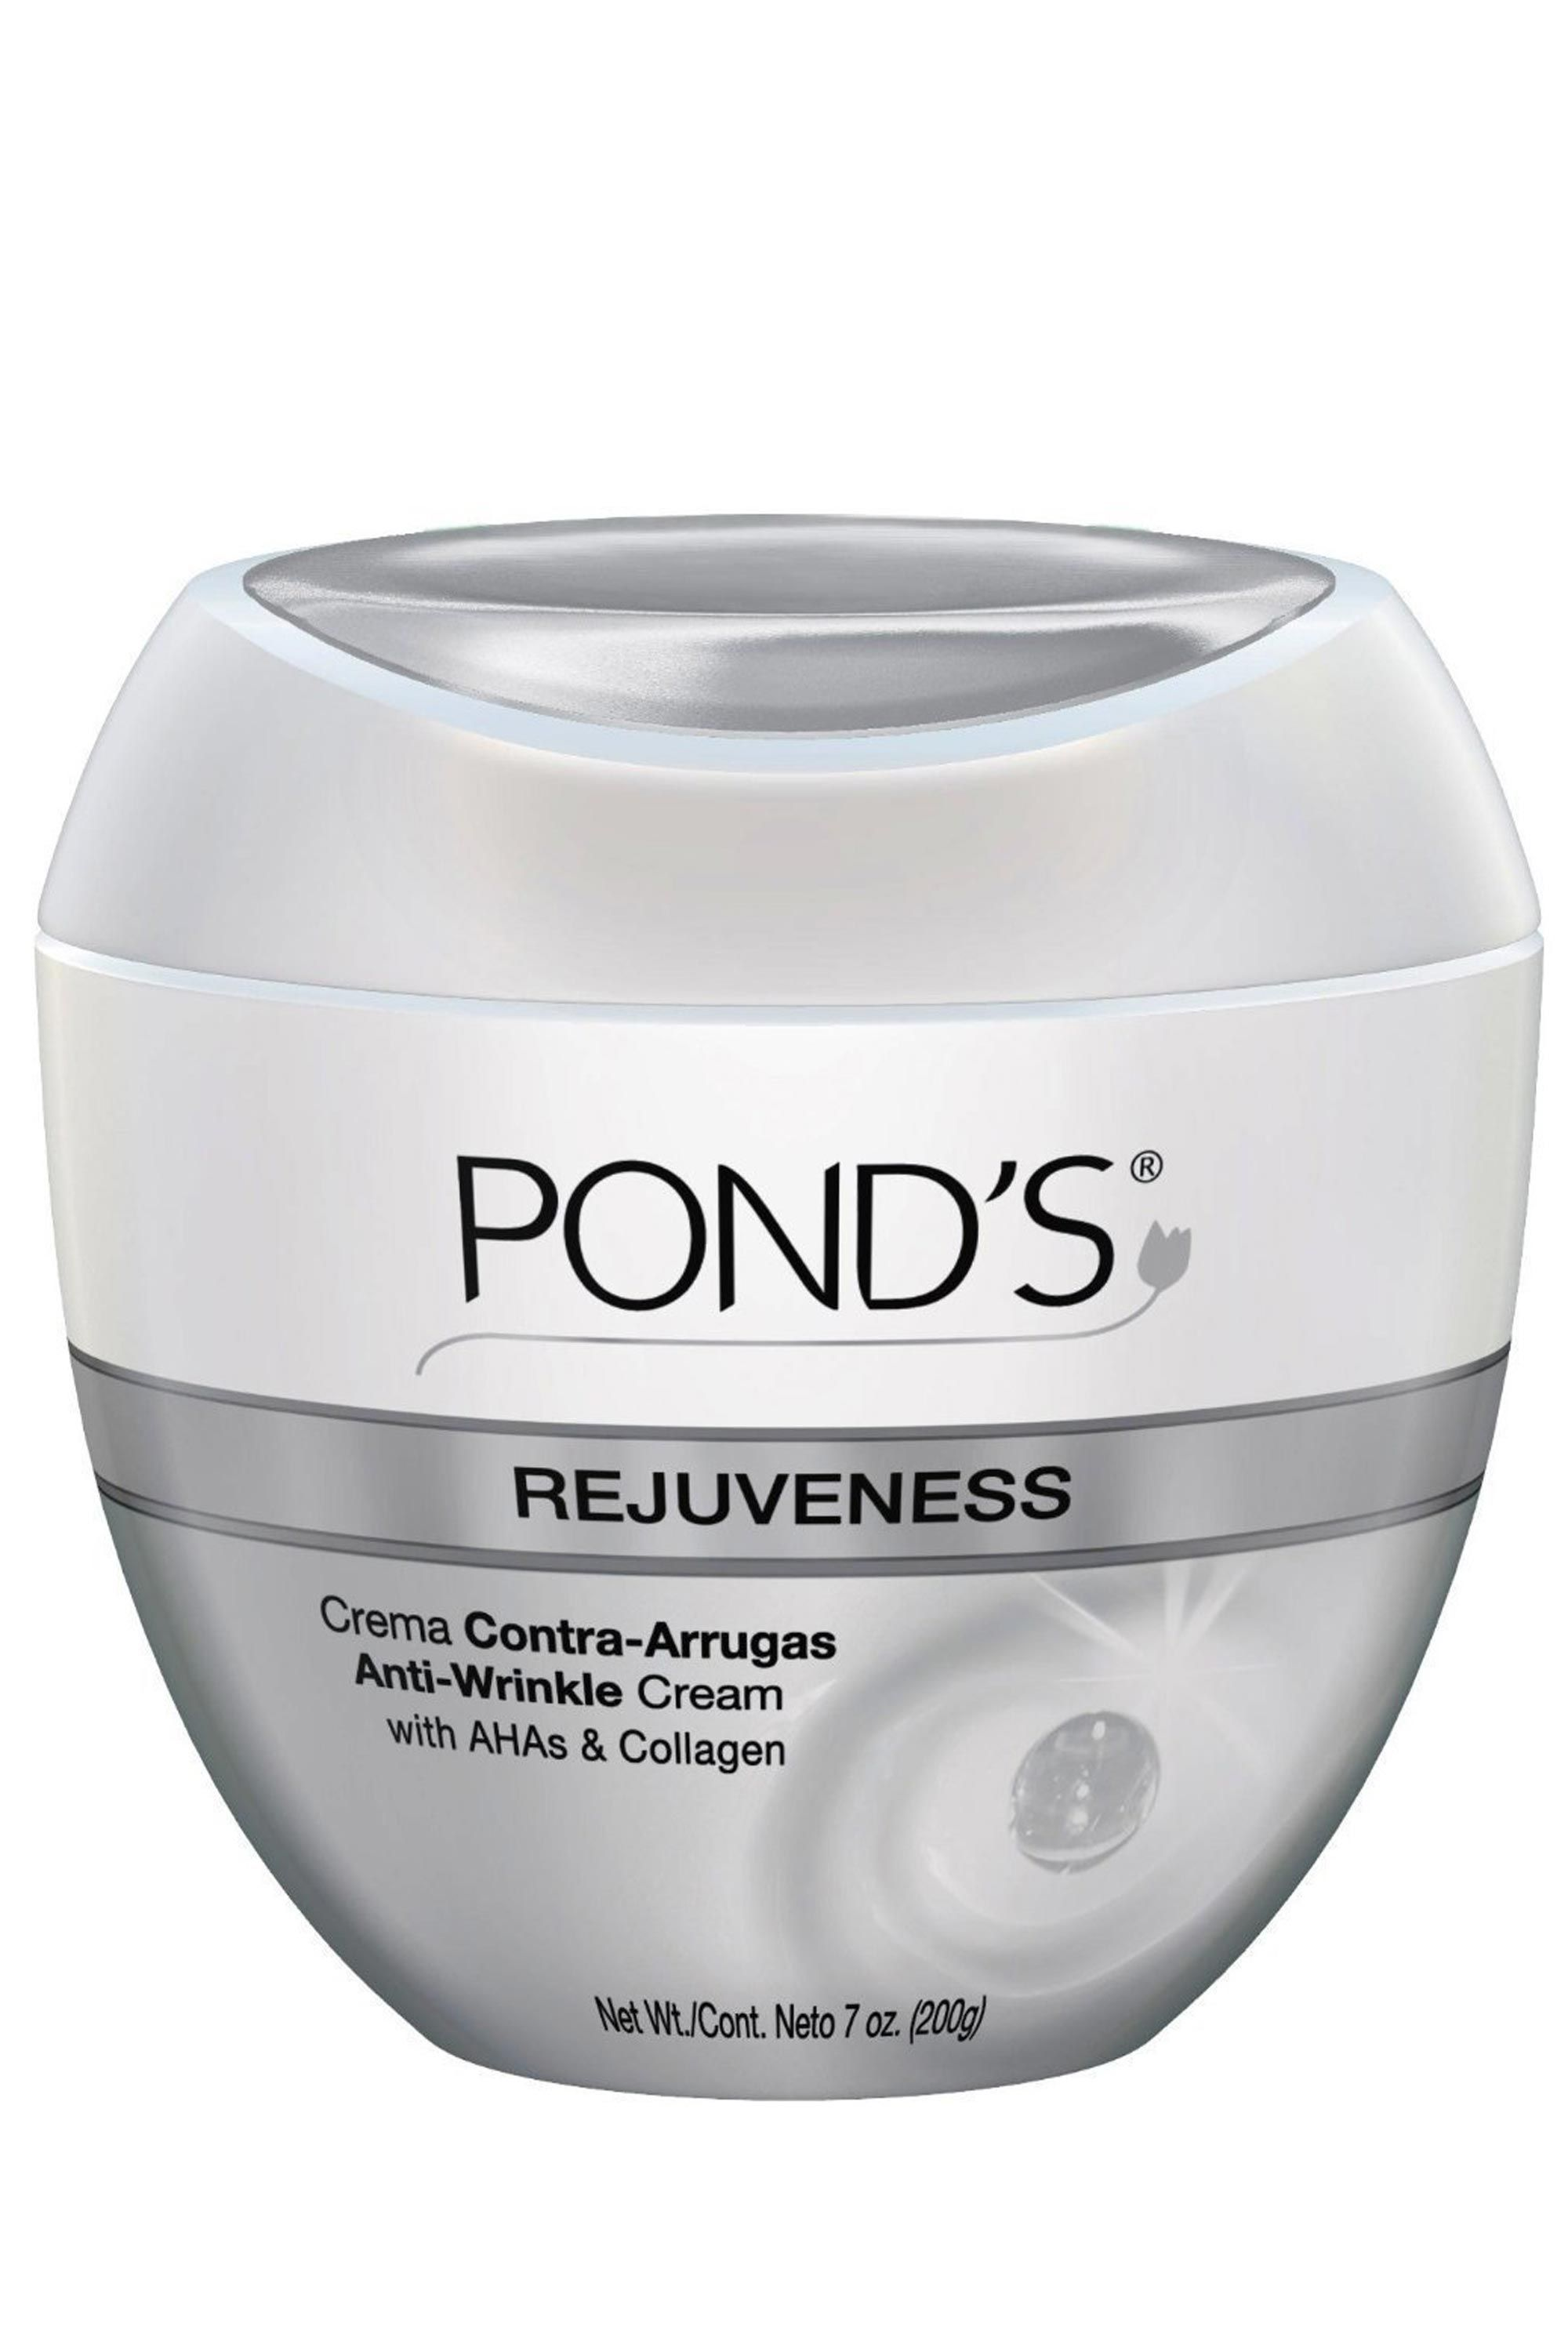 Best drugstore skin care products for mature skin